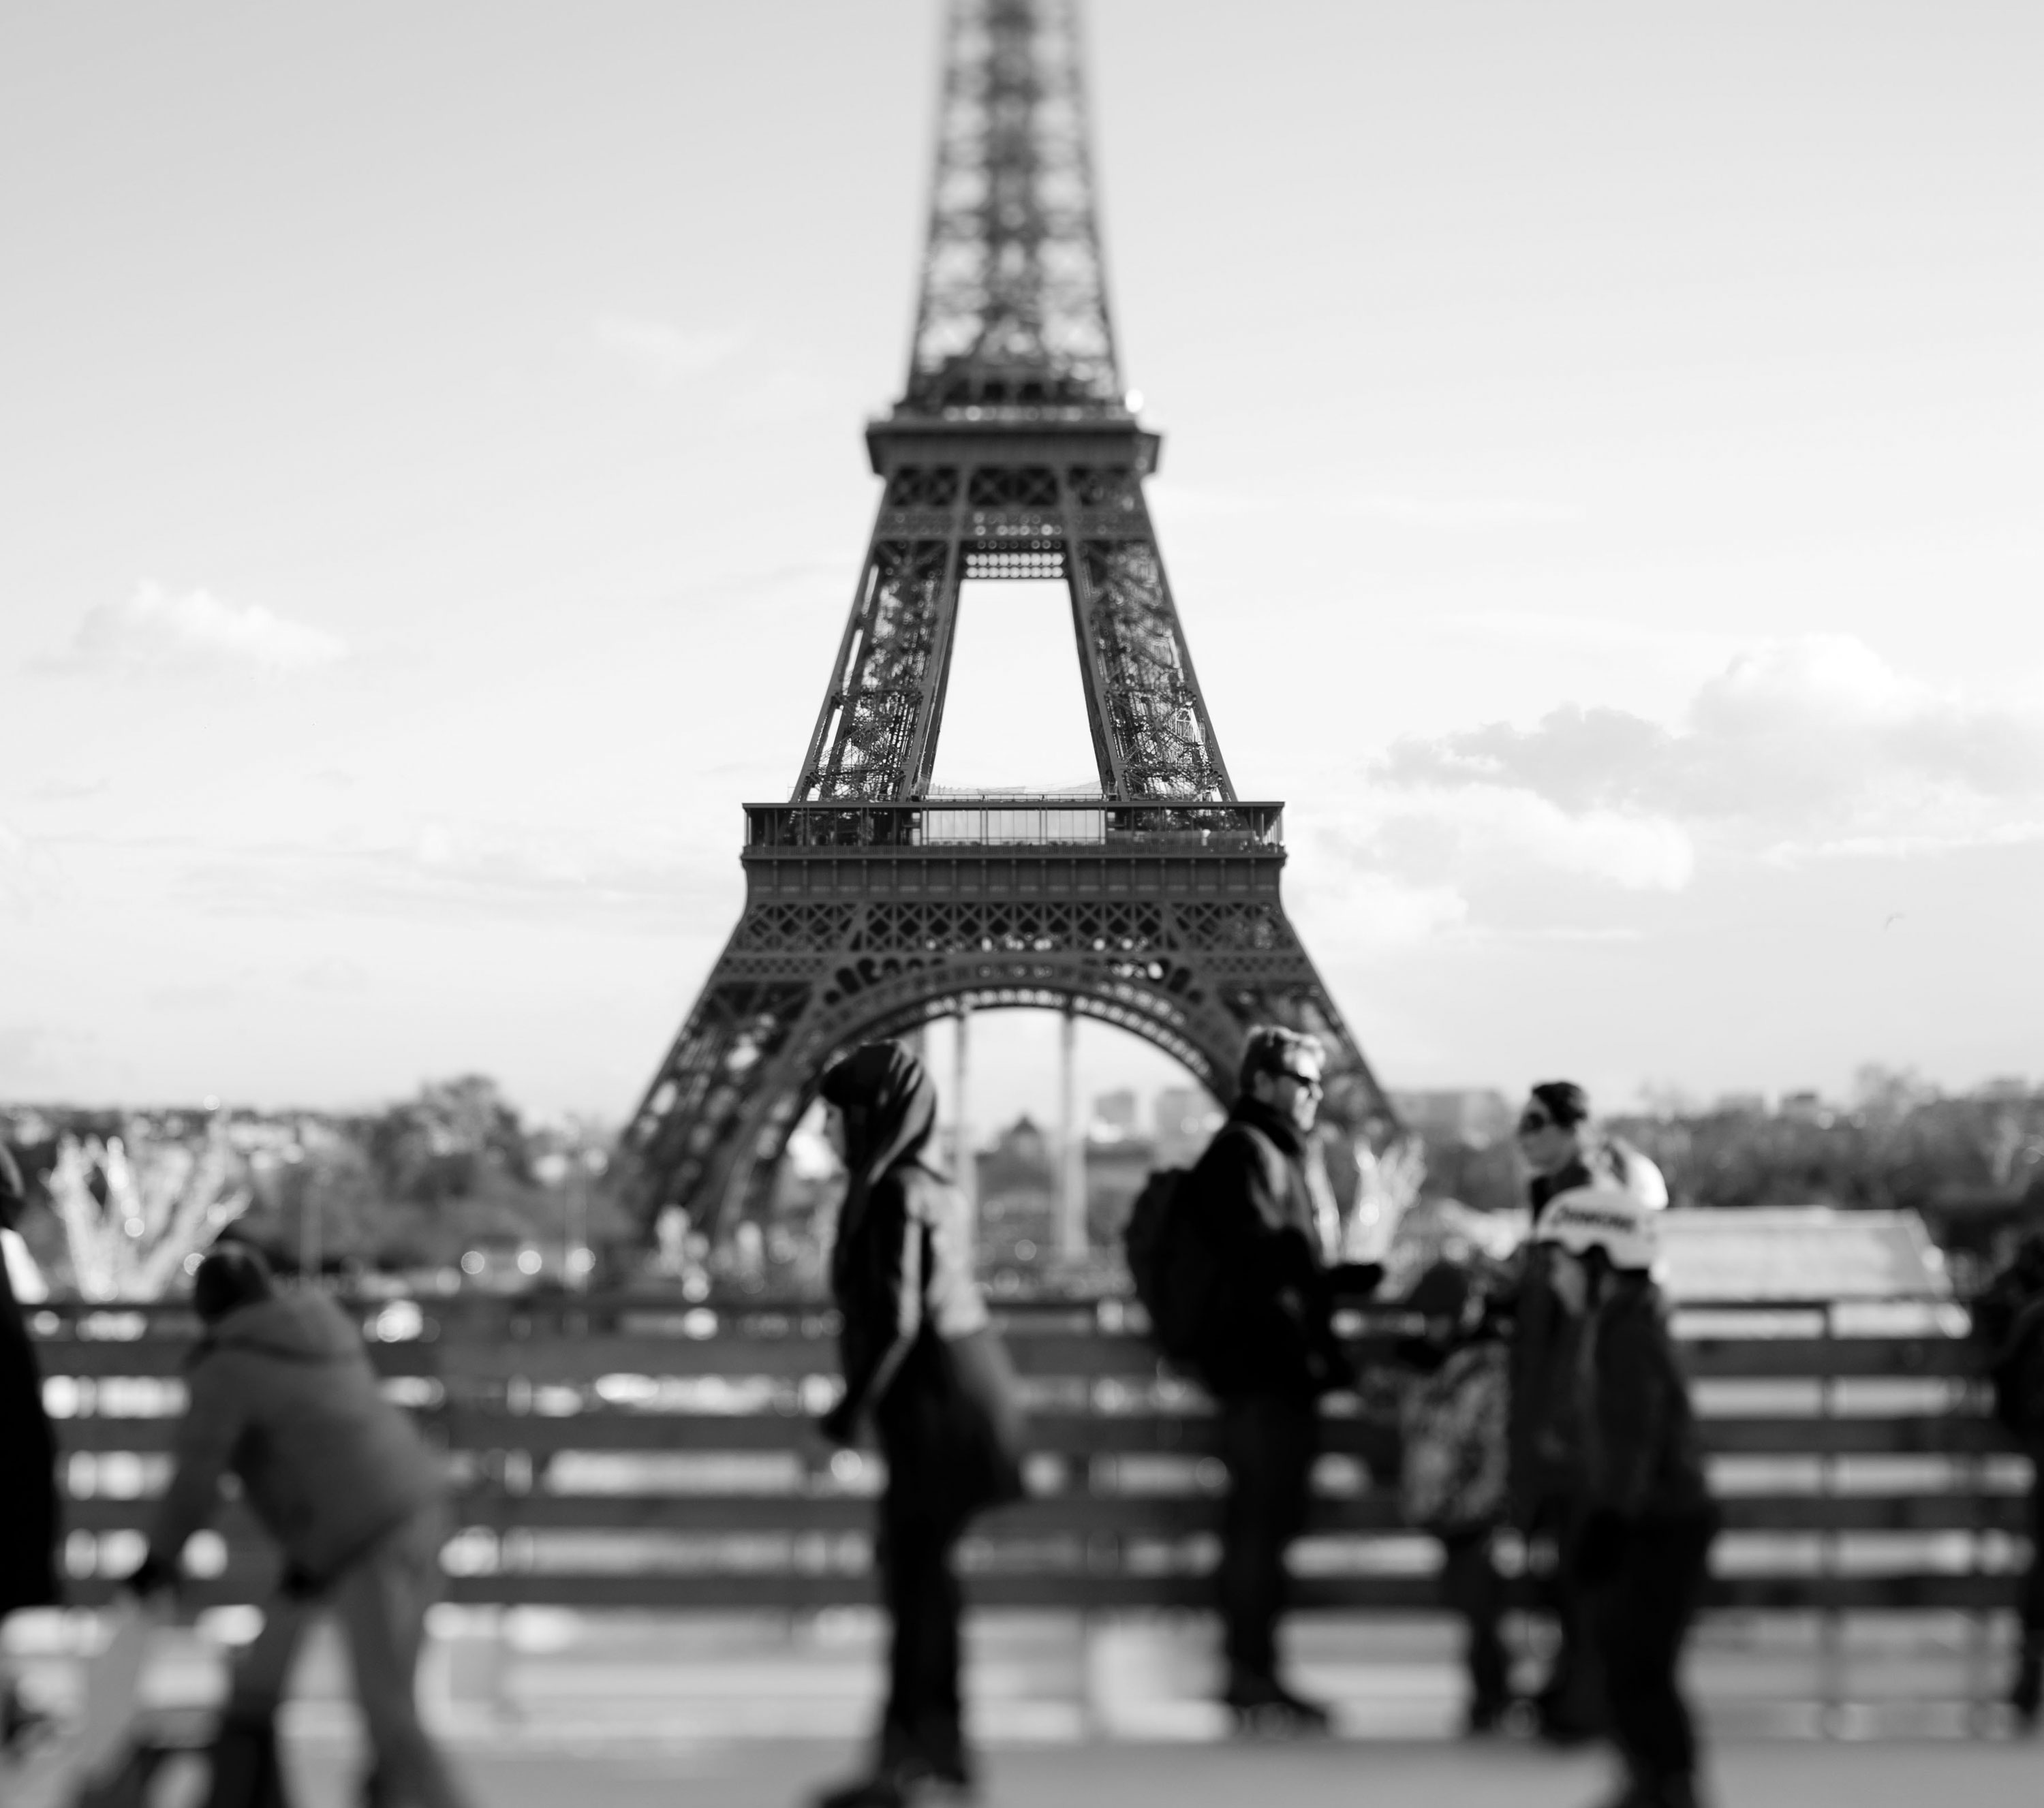 From December to February, the iconic Parisian monument is home to one of the world's most romantic skating venues. The ice rink is situated on the tower's first floor pantinoir almost 200 feet above the city, and features a bar selling mulled wine and hot chocolate.